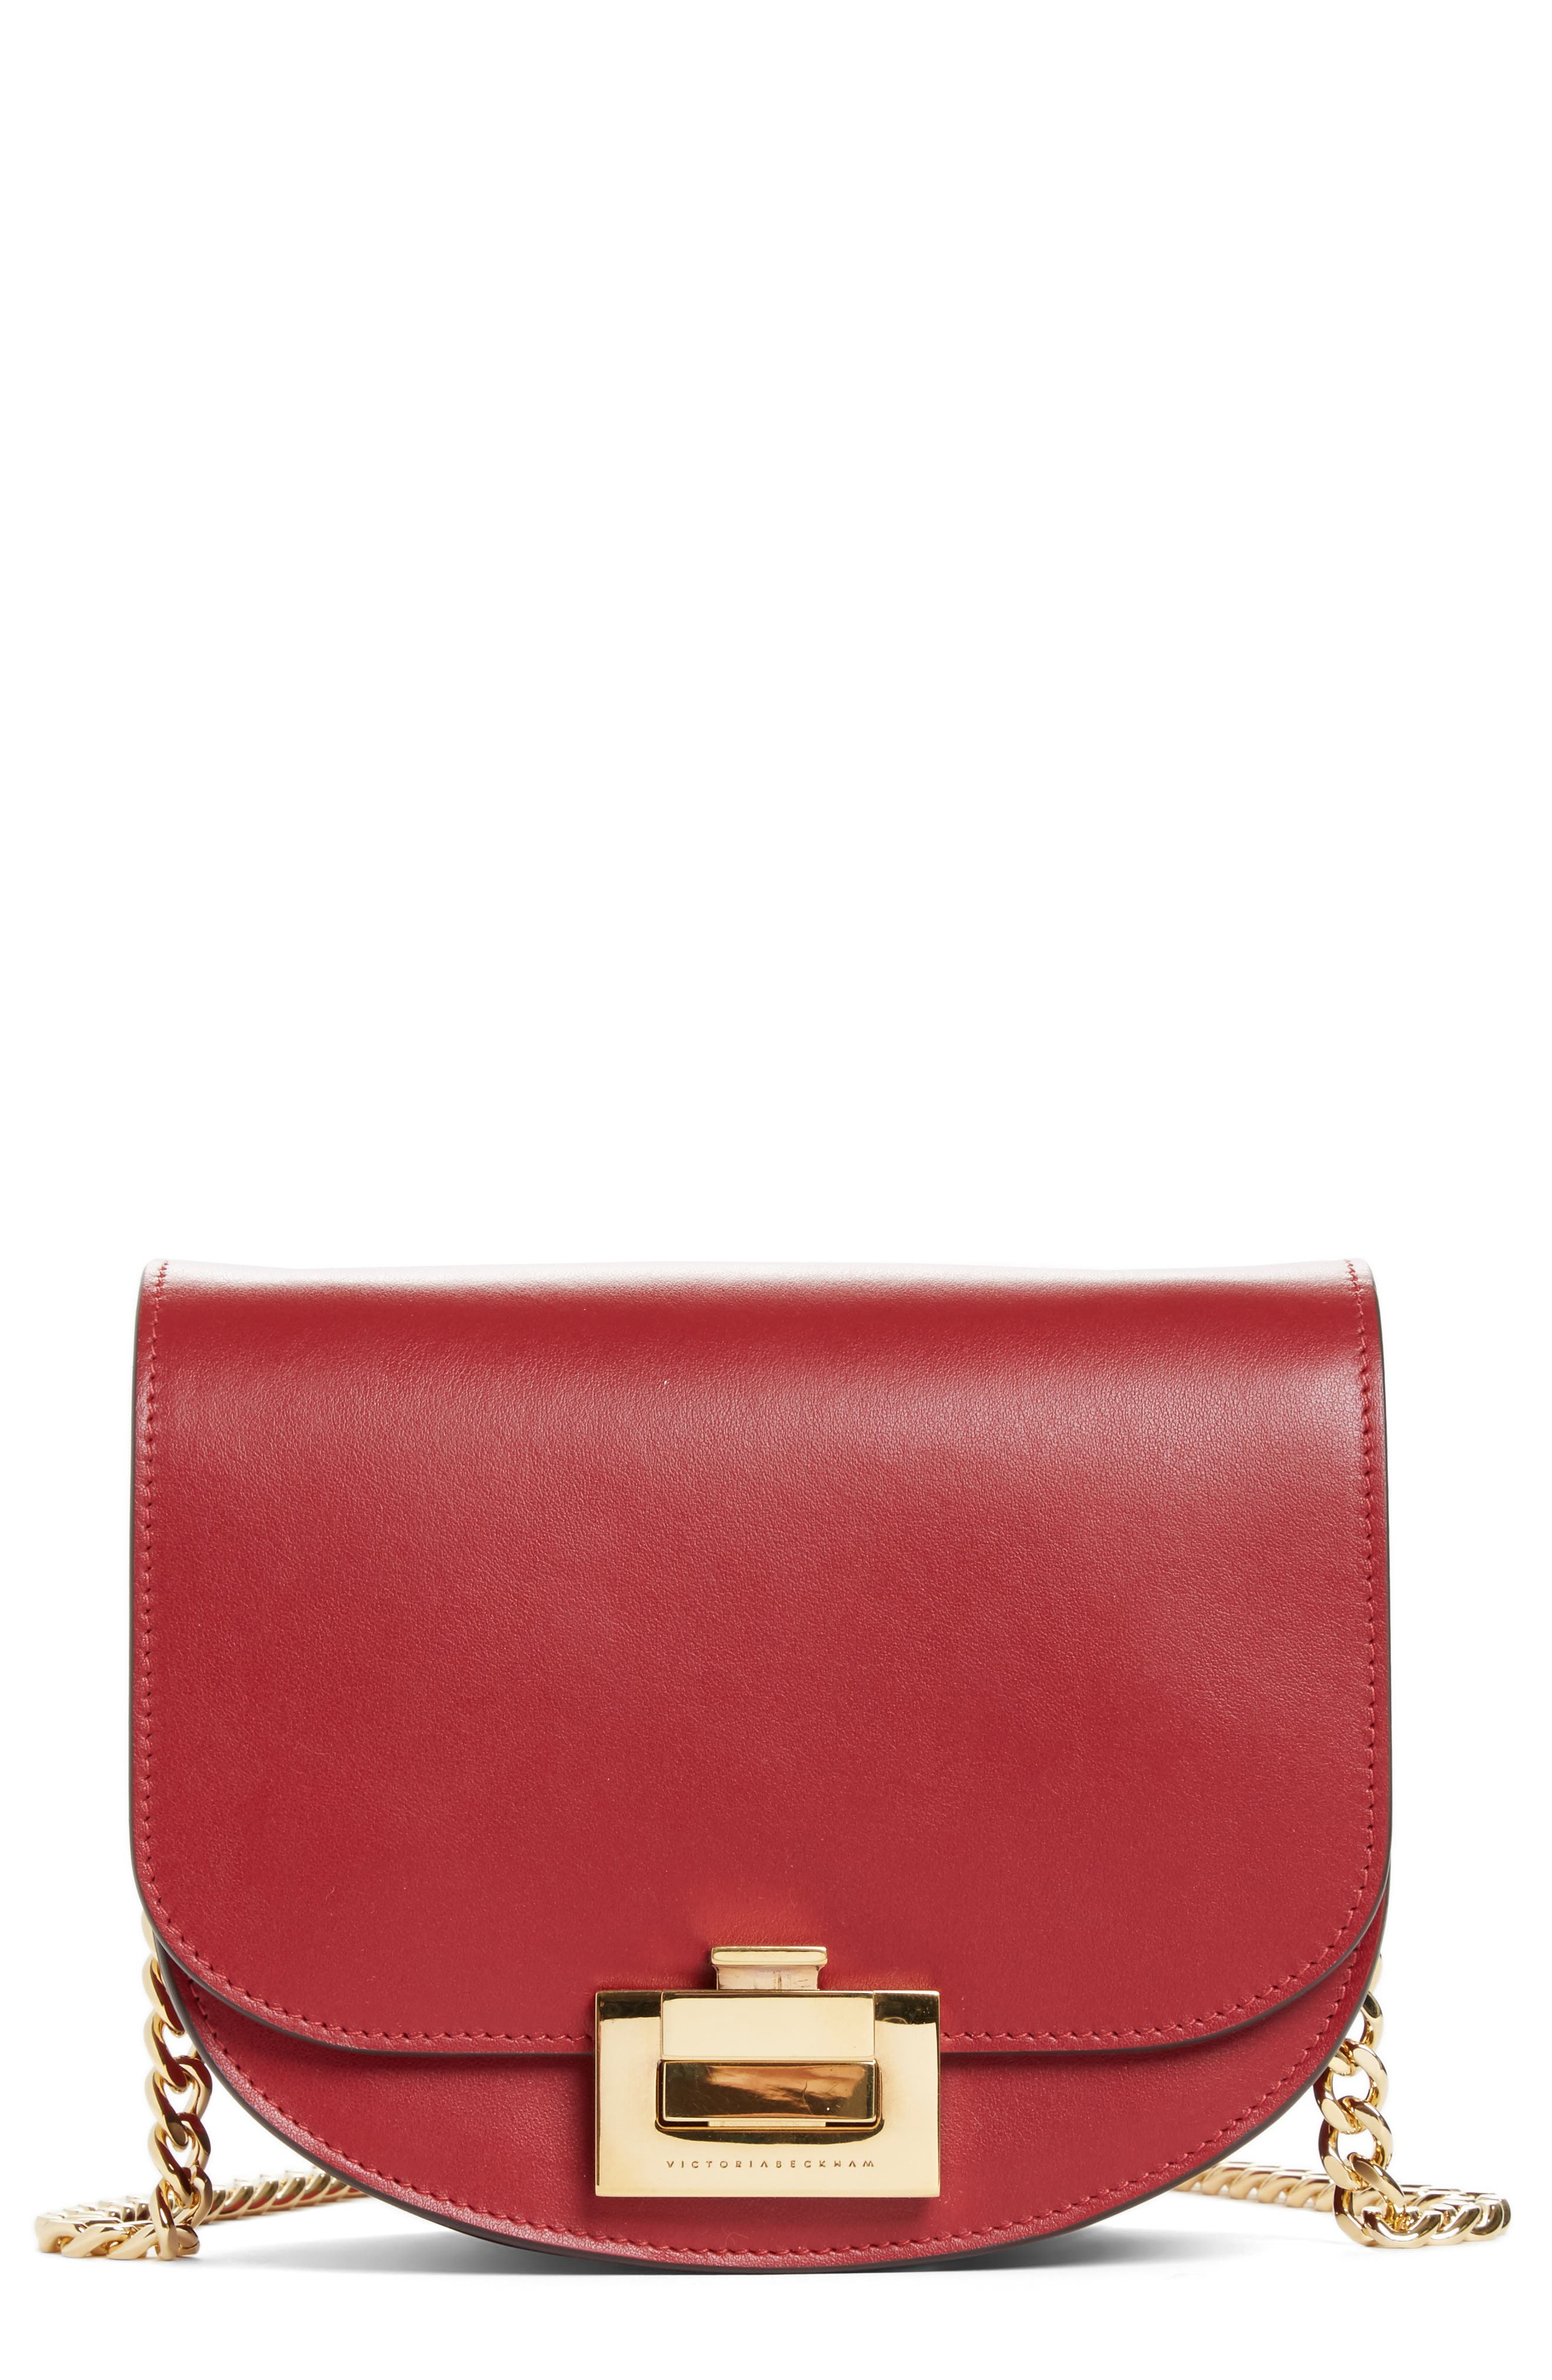 Victoria Beckham Leather Crossbody Bag